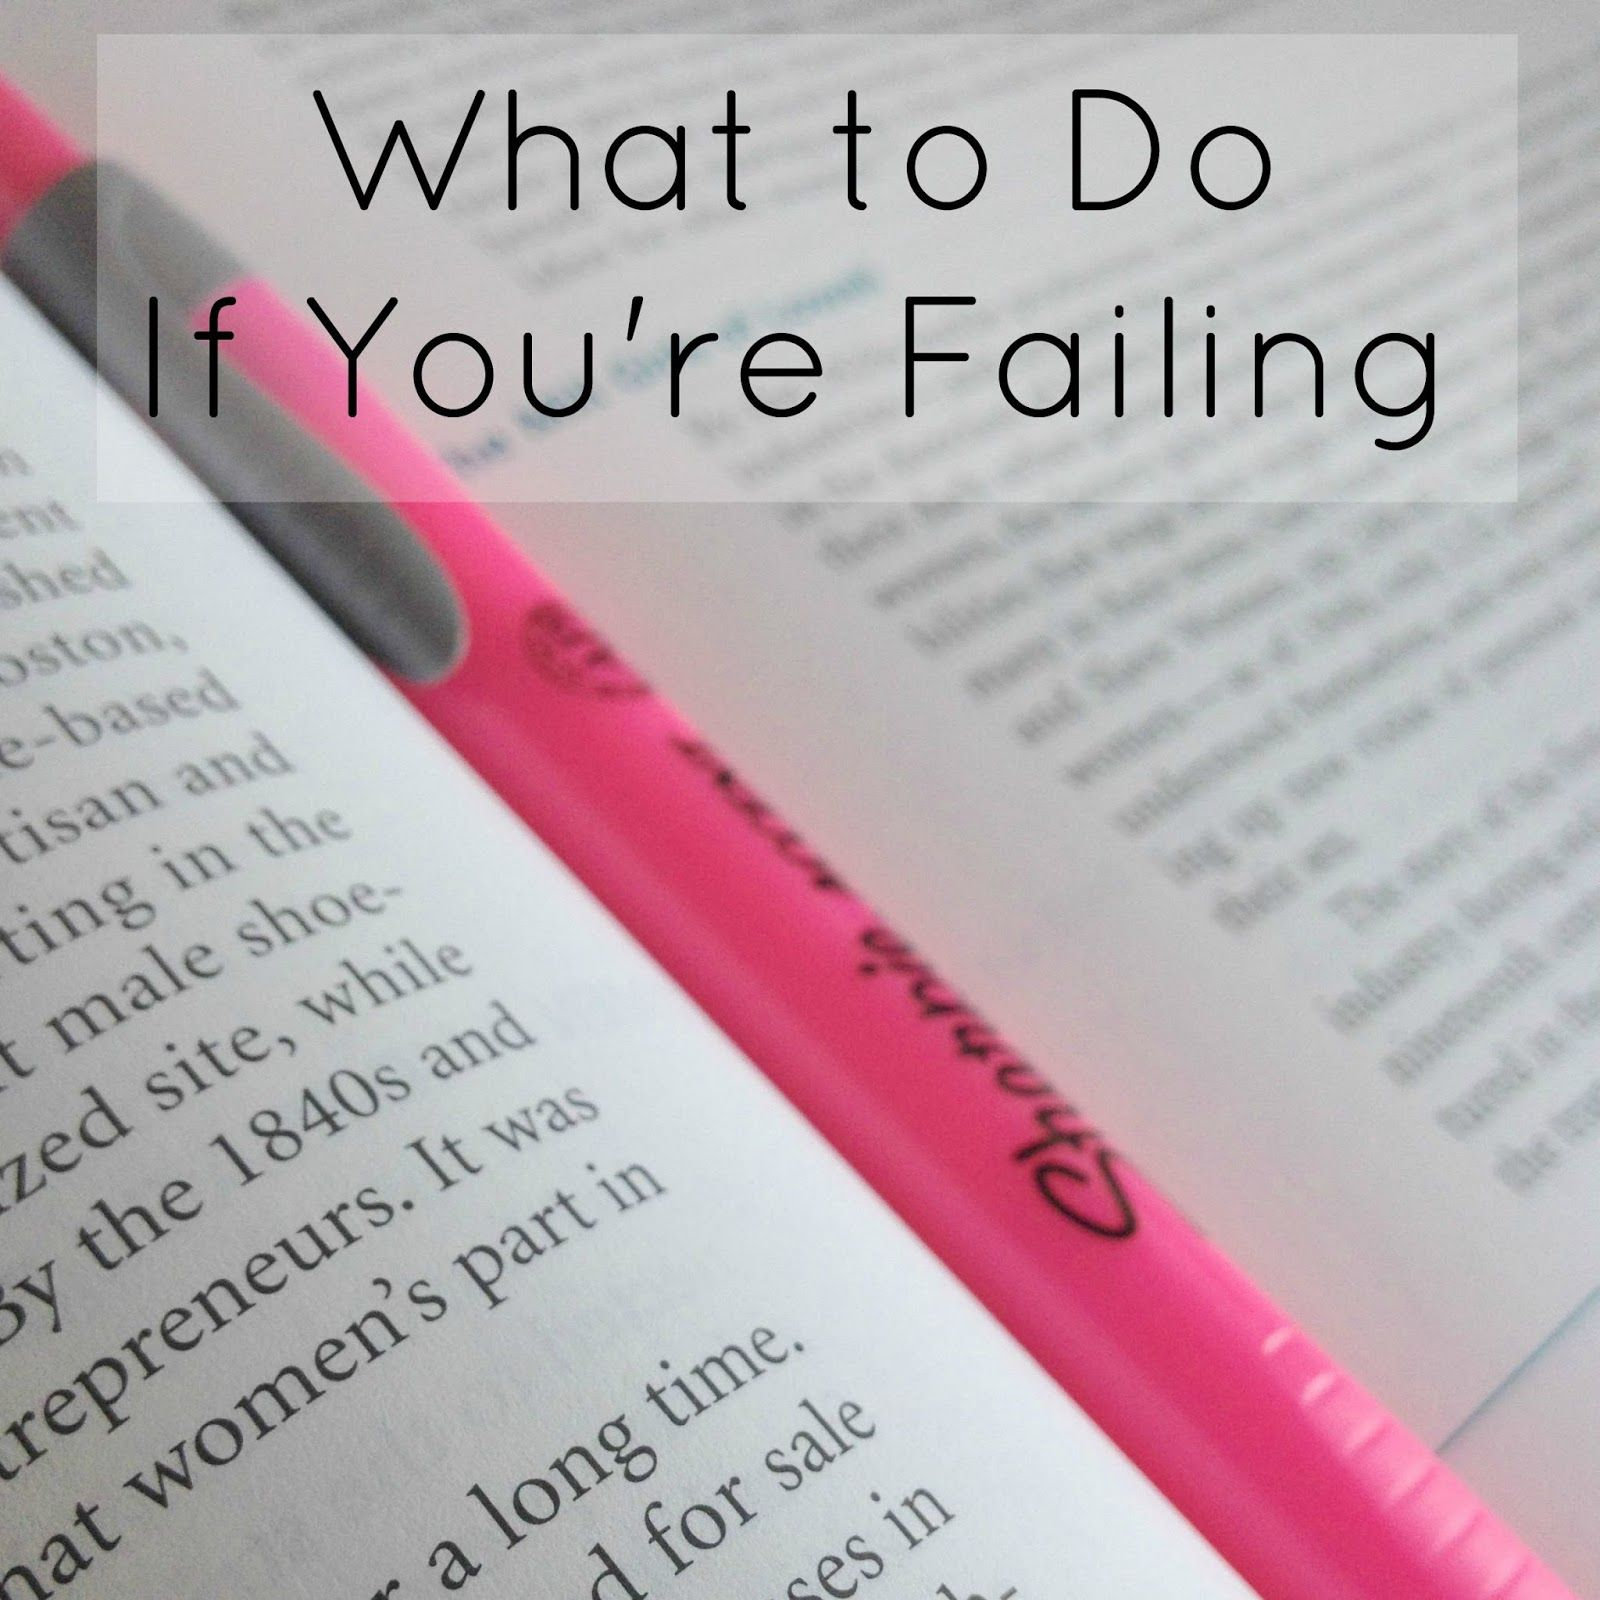 what to do if you re failing it is keep trying and hope what to do if you re failing a college class student tips and advice for overcoming a bad grade before the semester ends so that you can finish strong